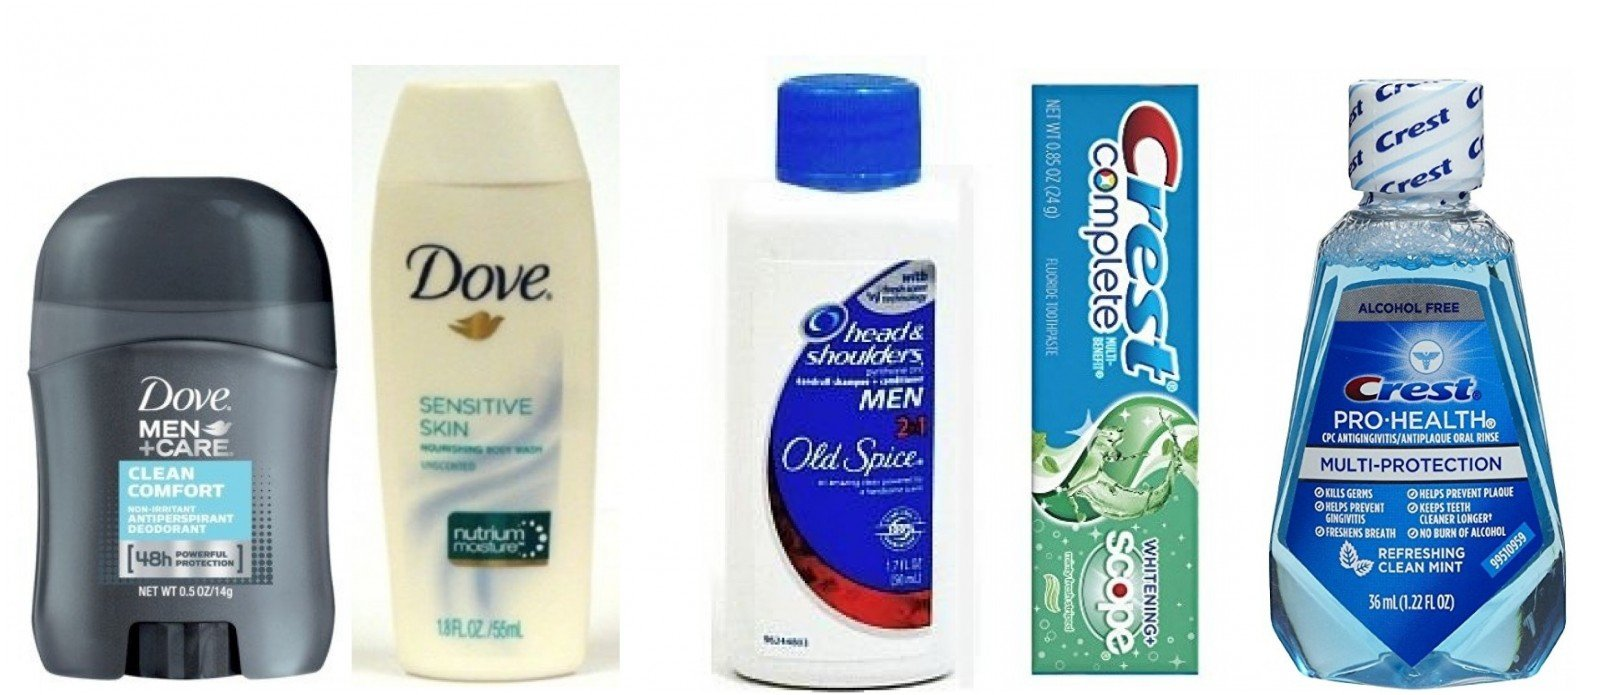 Cheap Head And Shoulders Travel Size Find Dove Aqua Moisture Body Wash Refill 400ml Twin Pack Get Quotations Men Deodorant Sensitive Old Spice Shampoo Crest